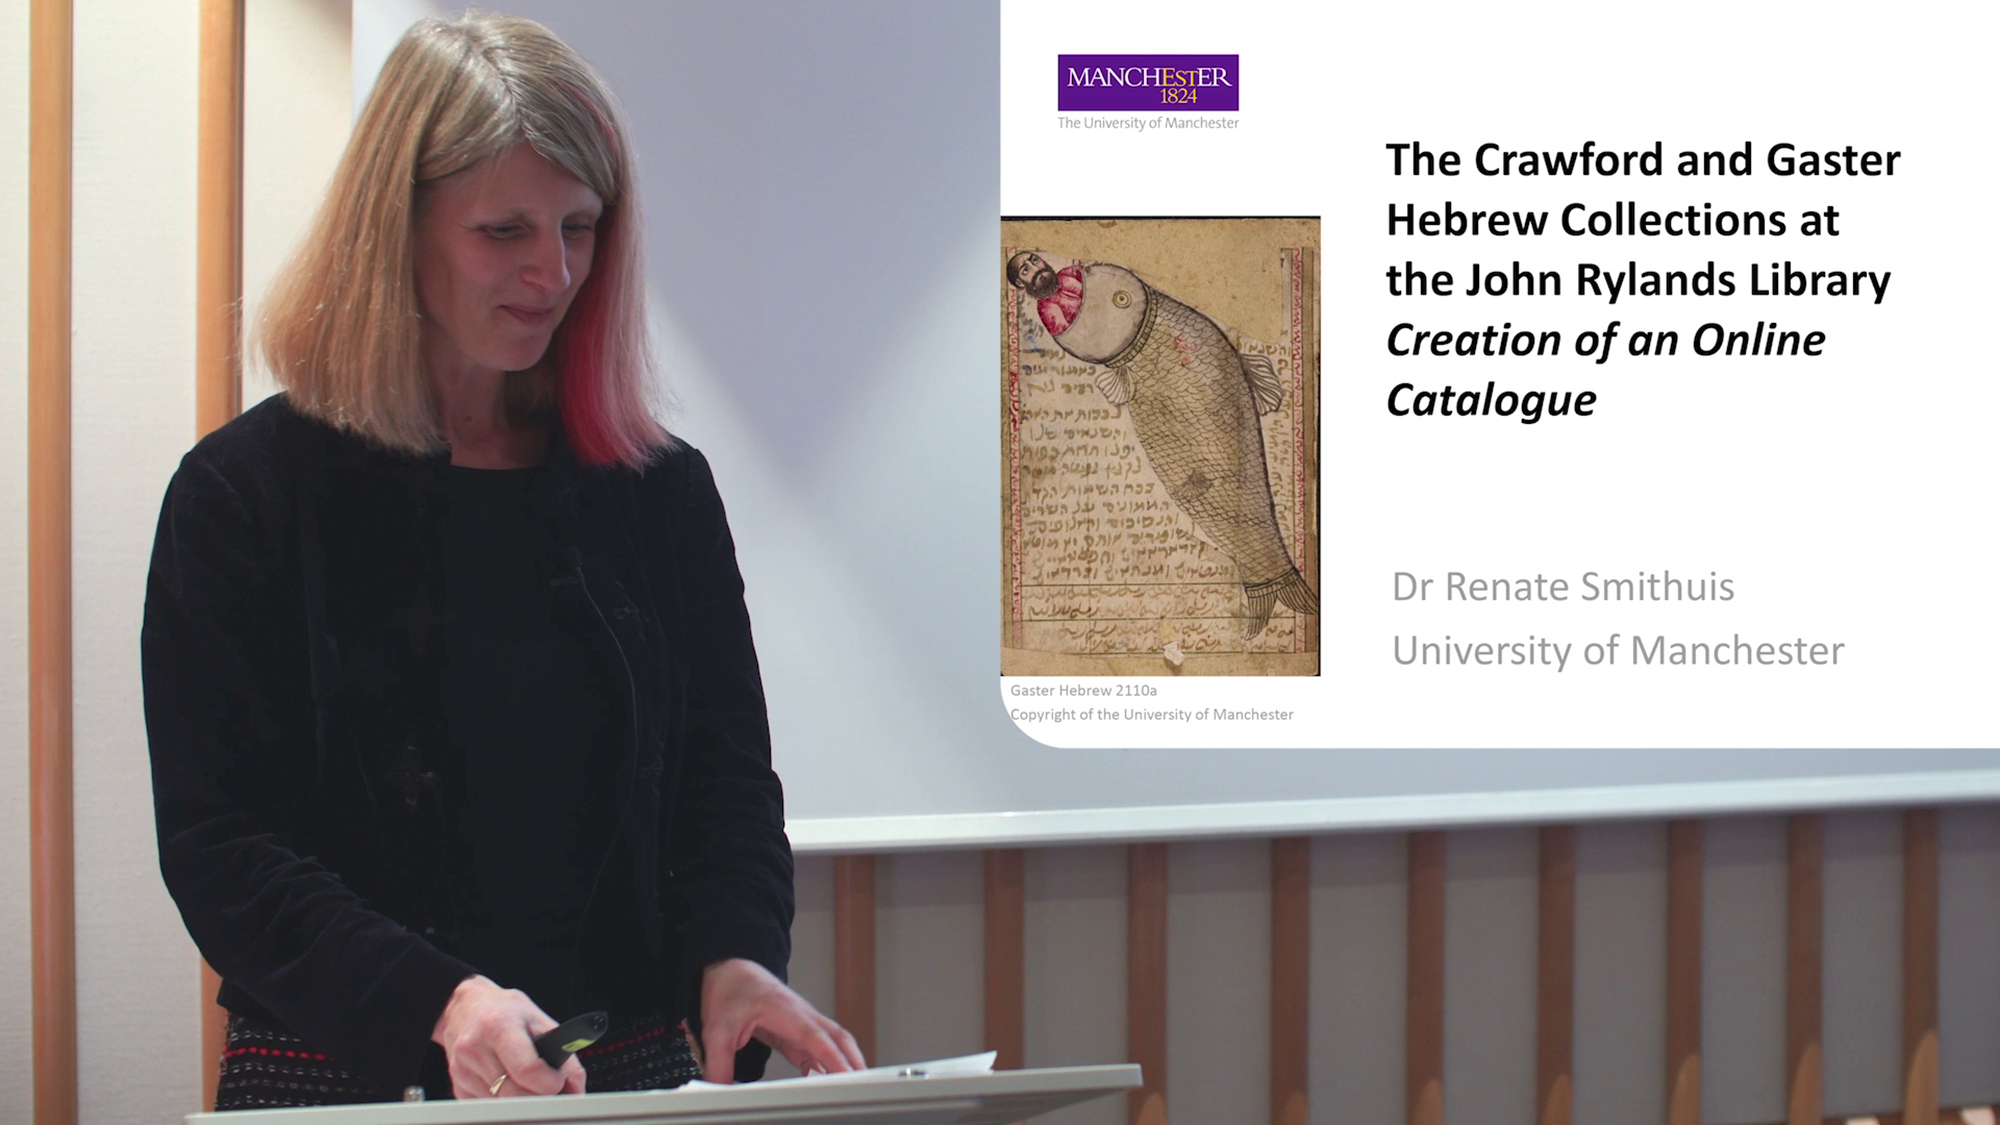 Dr Renate Smithuis, Lecturer in Medieval Jewish Studies, University of Manchester presents the externally funded project currently undertaken at the John Rylands Library on its collection of Hebrew manuscripts. The objects comprise codices, scrolls, amulets and other texts in Hebrew script . The great variety of the collection is being captured in text  and image with the aim of producing a complete online catalogue as part of a new digital platform.